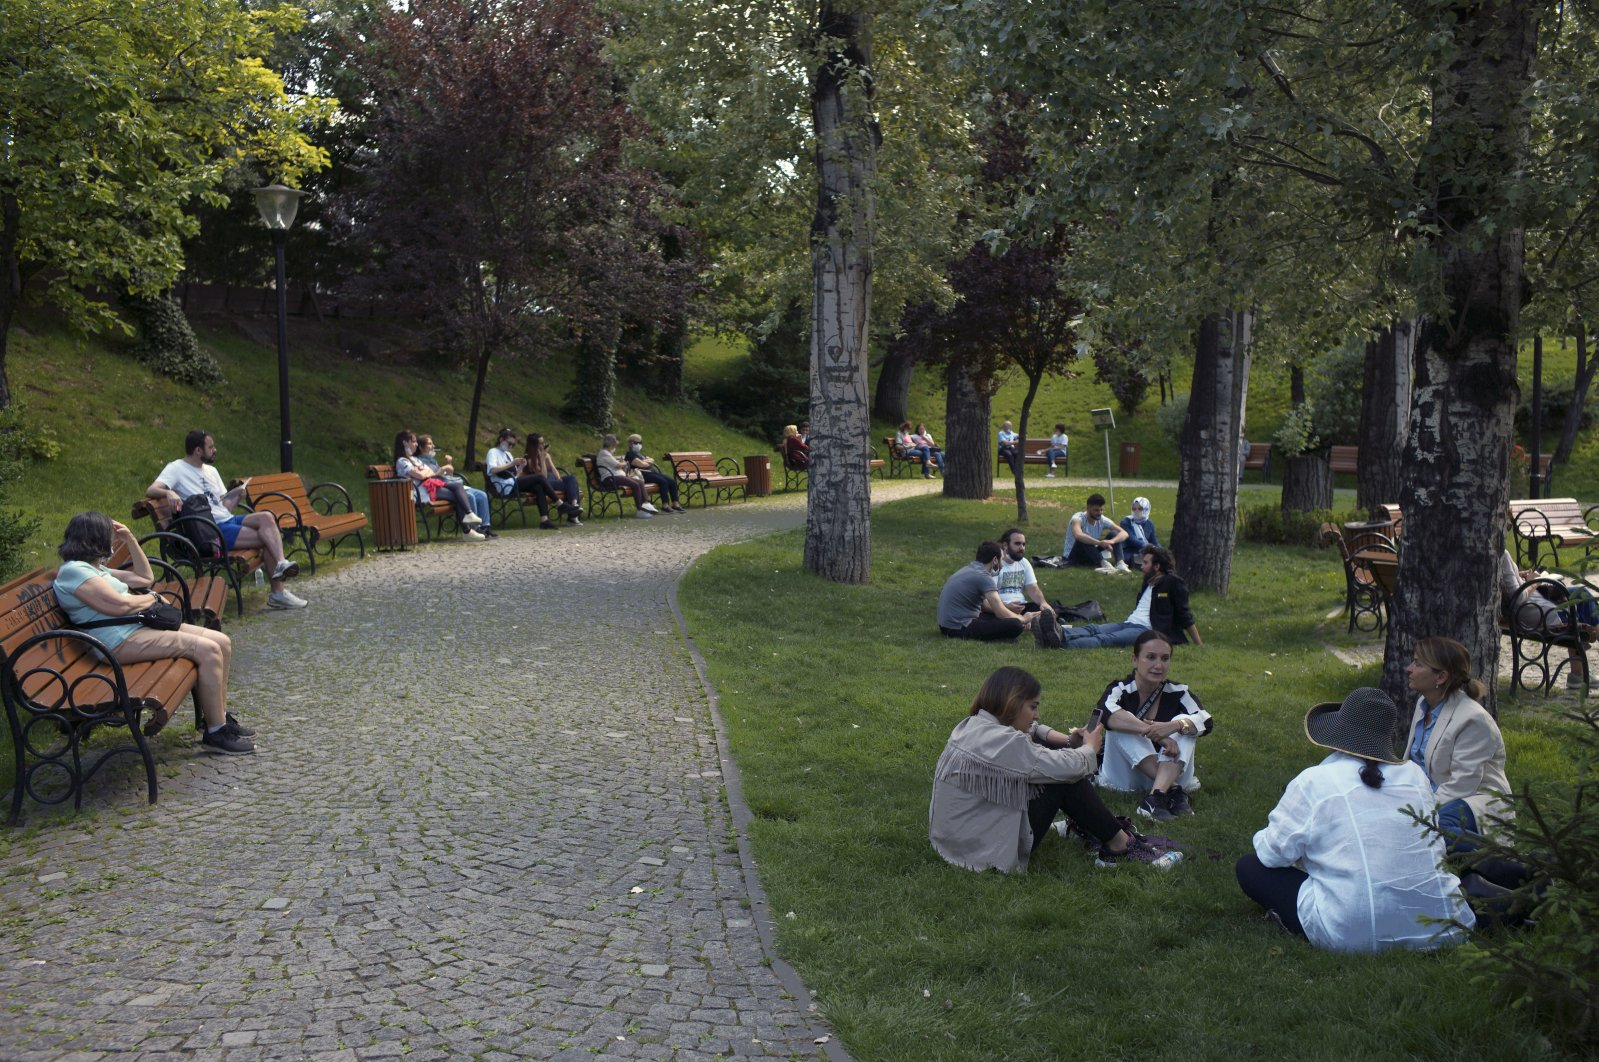 Maskless people sit in a public garden, despite a mandatory rule requiring face masks to be worn, in Ankara, Turkey, June 24, 2020. (AP Photo)